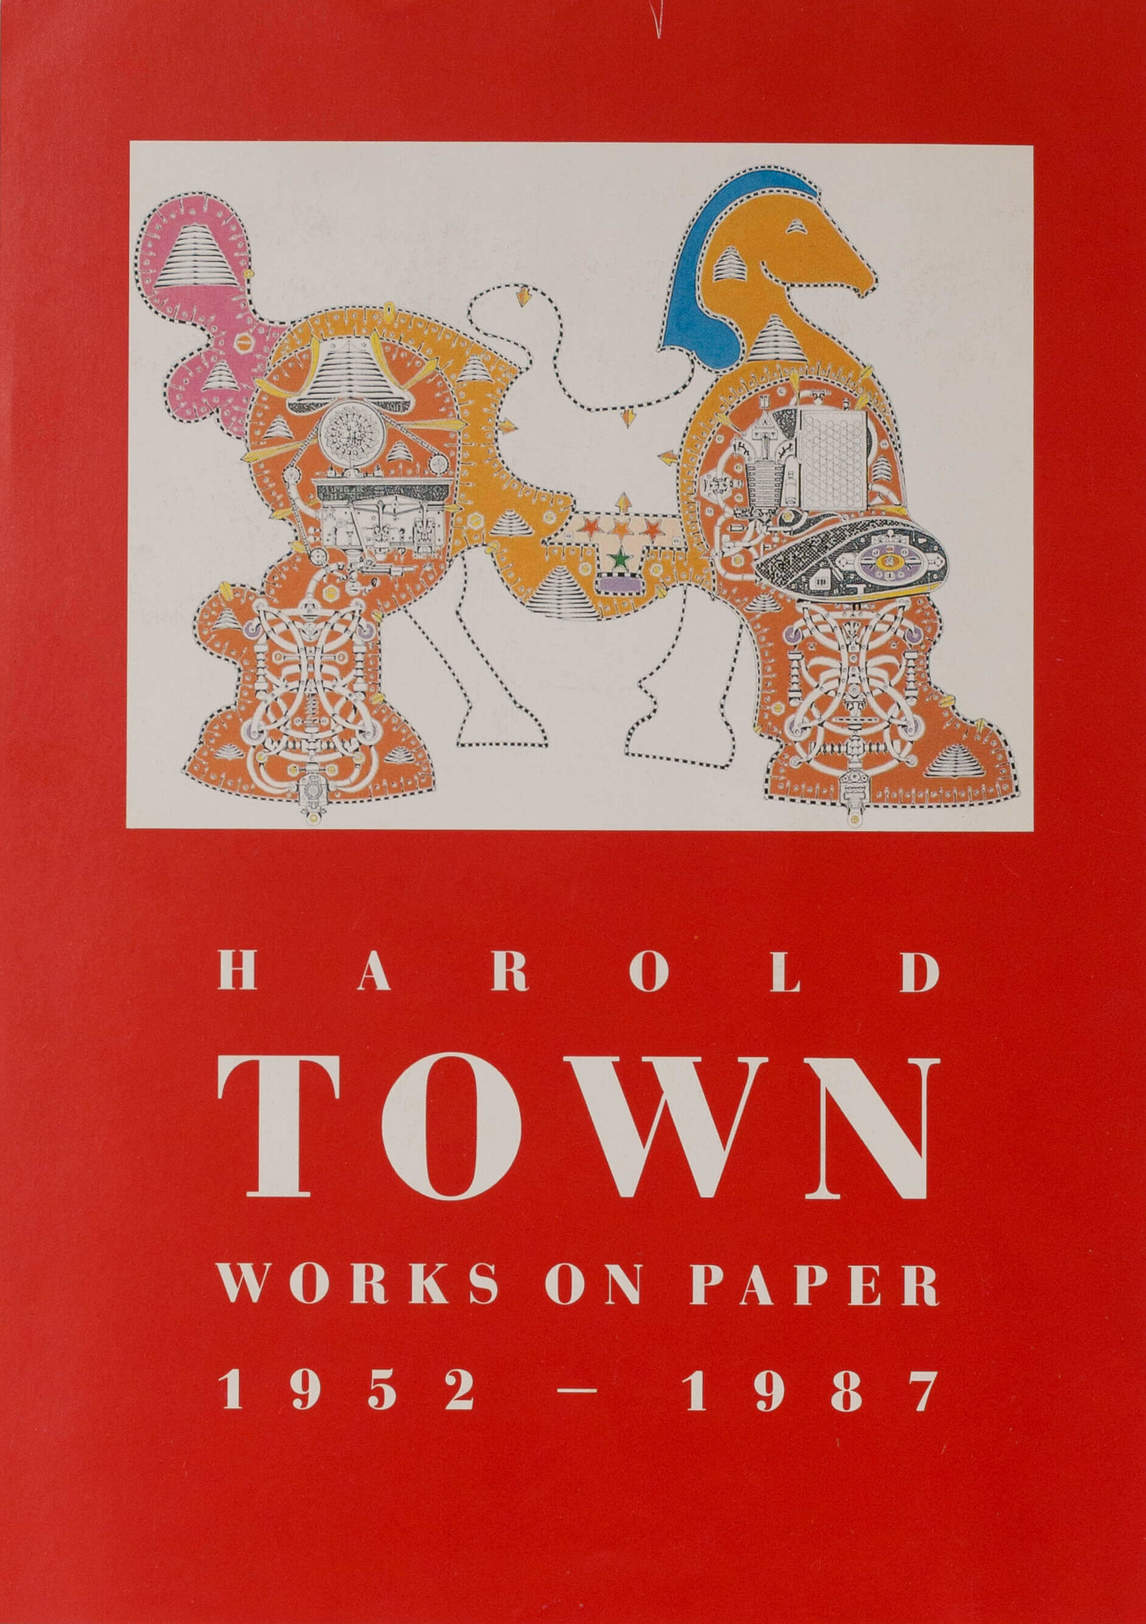 Art Canada Institute, Flyer for the 1987 exhibition Town: Works on Paper, 1952–1987 at the Canada House Cultural Centre Gallery, London, England